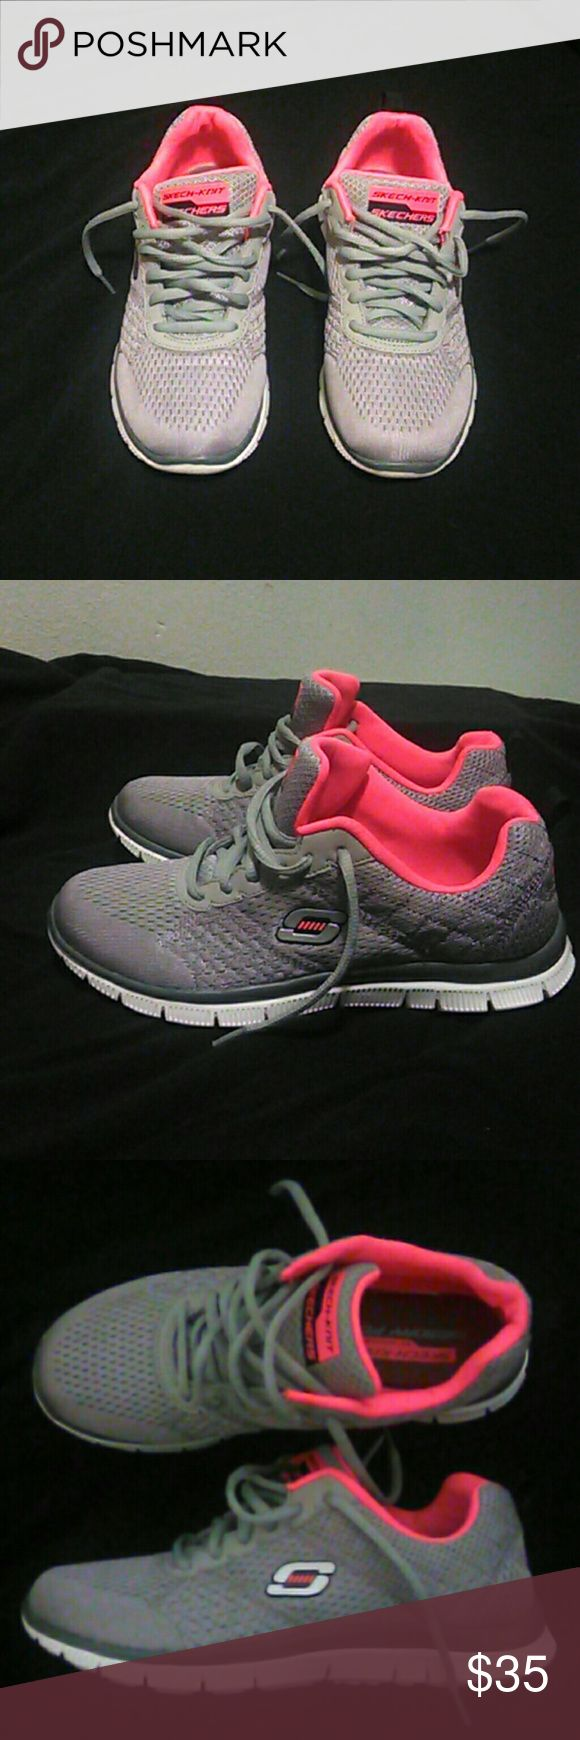 Skecher Skech-Knit w/ Memory Foam Sneaker (Size 7) Like brand new w/out box  Worn 2x in fashionable way no sports In Grade A condition (see pics) No defects or blemishes Grey and Hot Pink in color Memory Foam insoles Originally purchased brand new for $80 Priced to GO still like new at $35 Skechers Shoes Sneakers